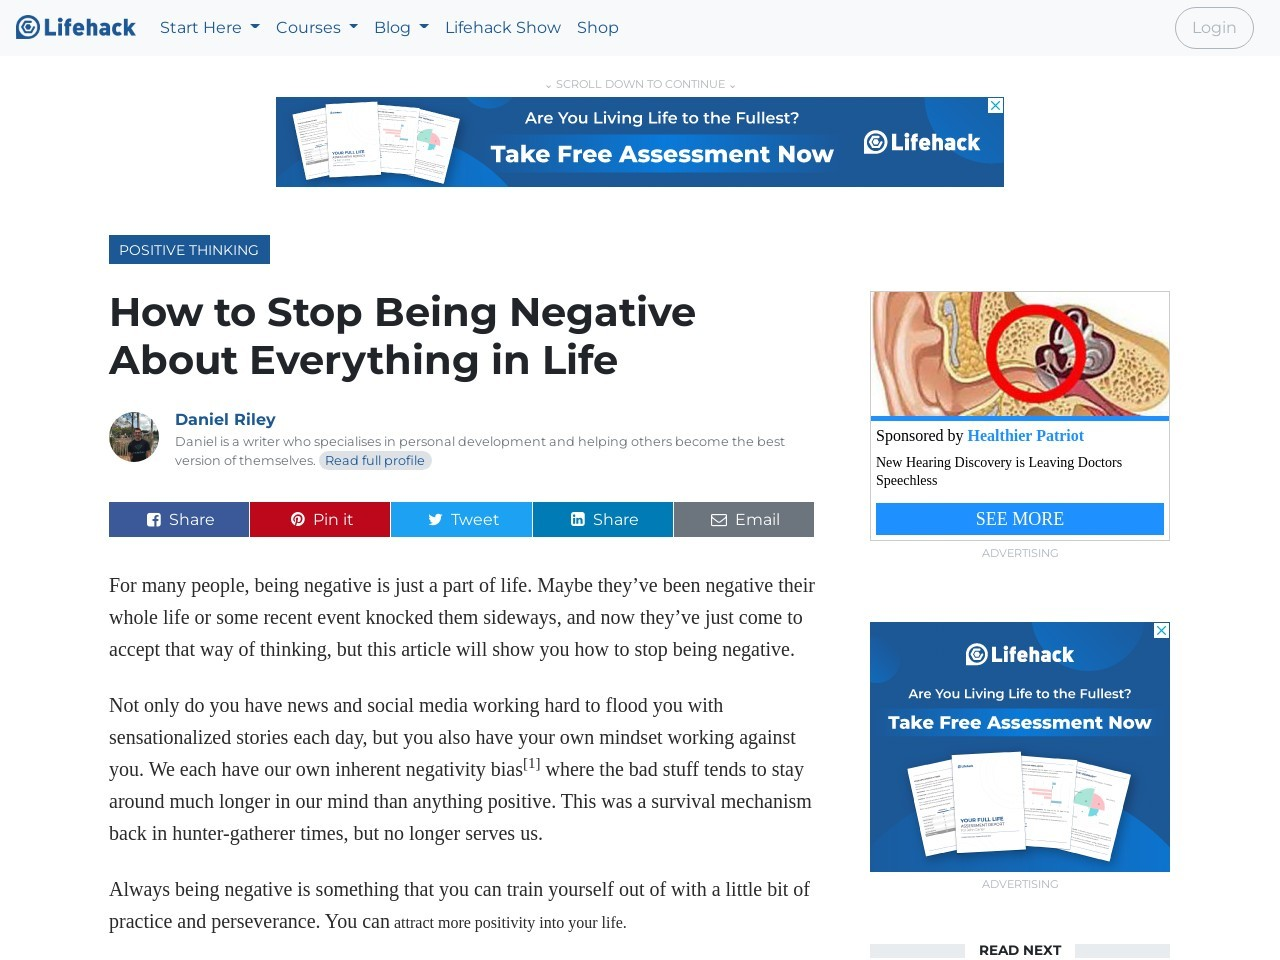 How to Stop Being Negative About Everything in Life